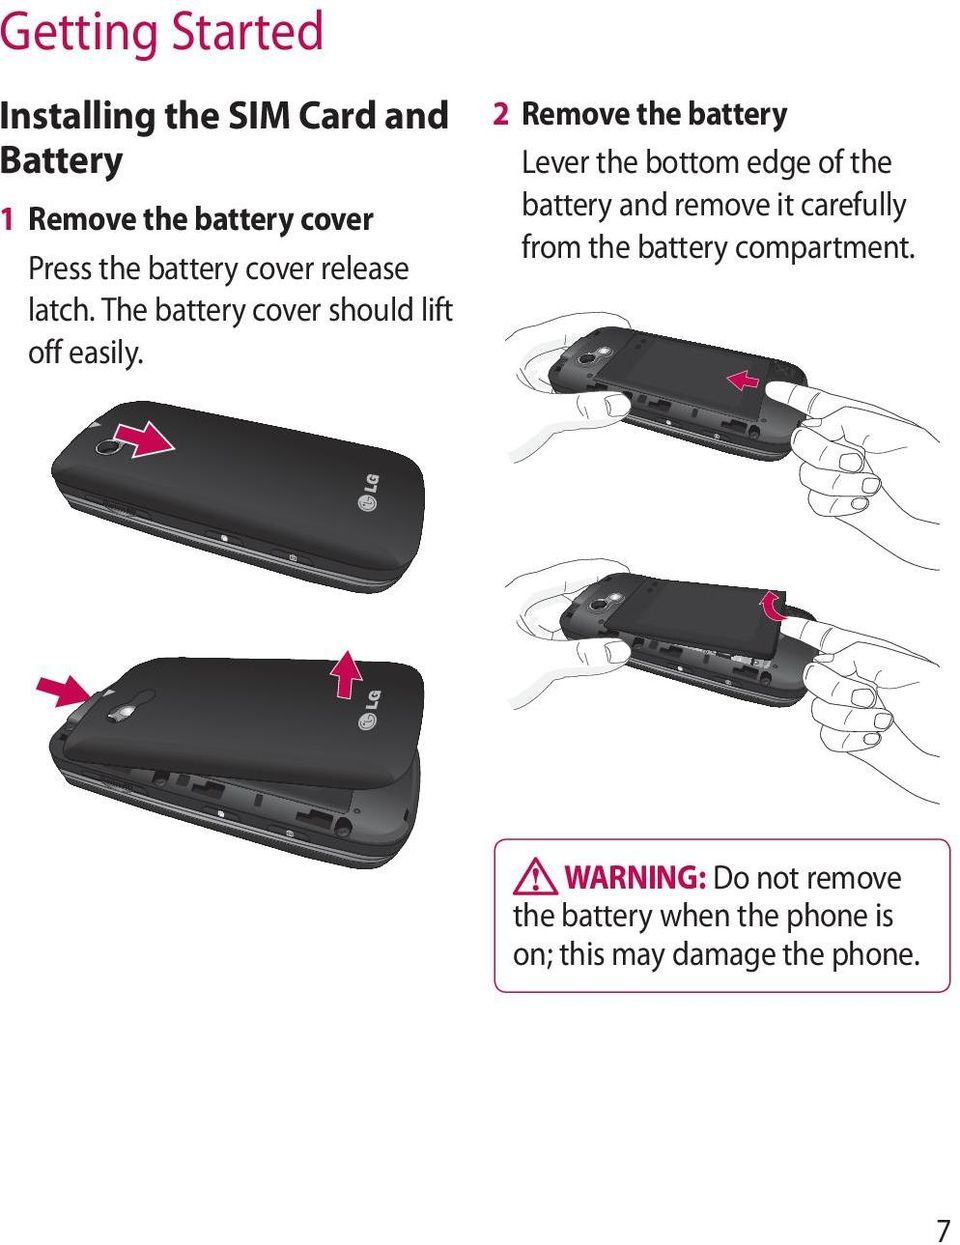 2 Remove the battery Lever the bottom edge of the battery and remove it carefully from